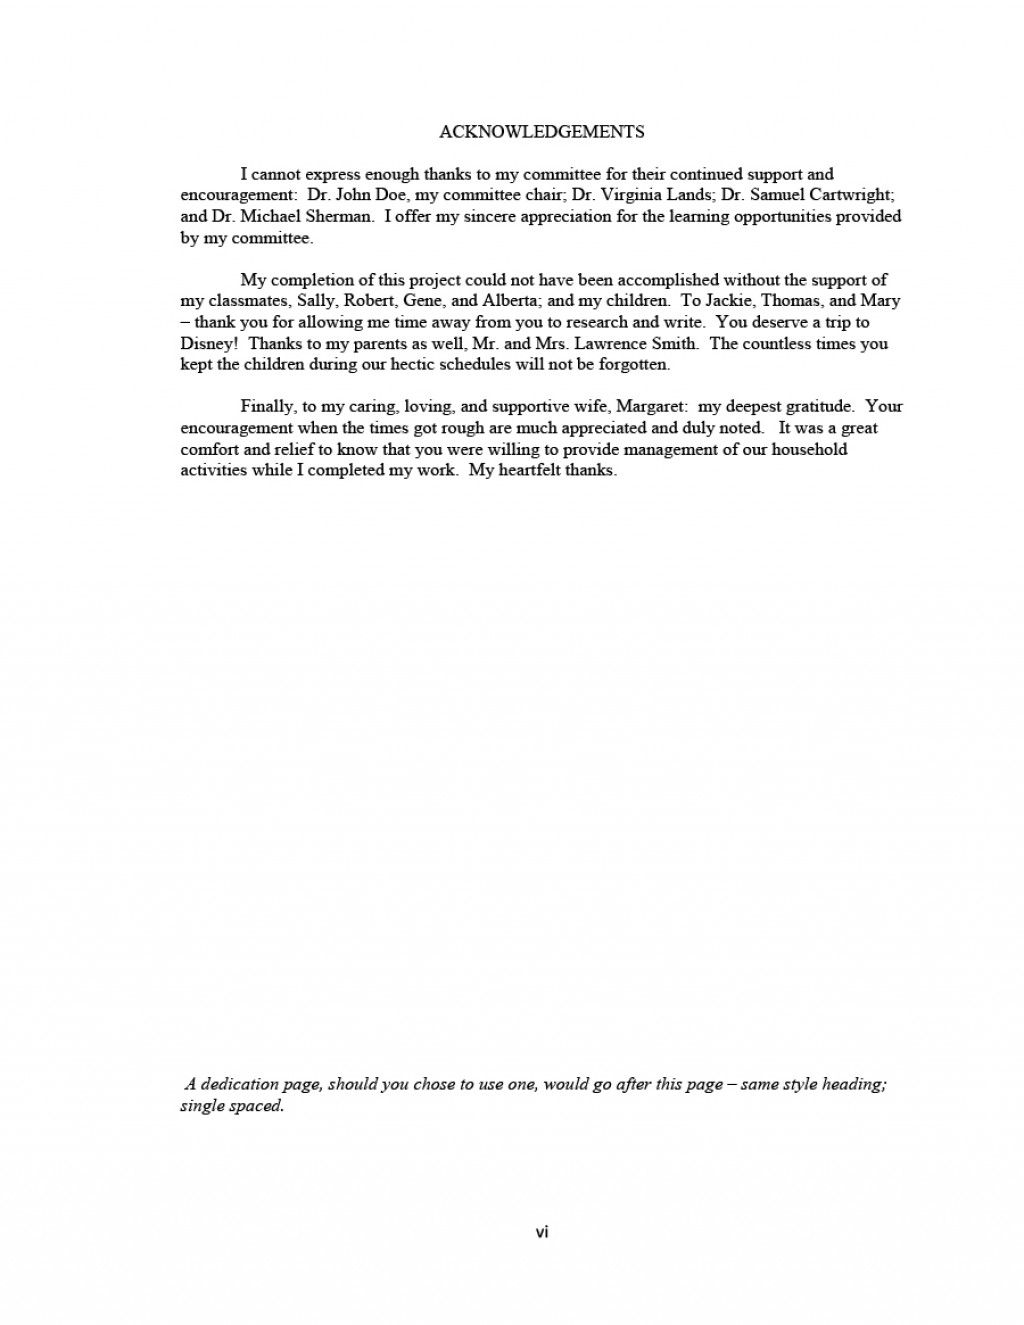 004 Acknowledgement Example For Research Paper Sample Rare Pdf Large